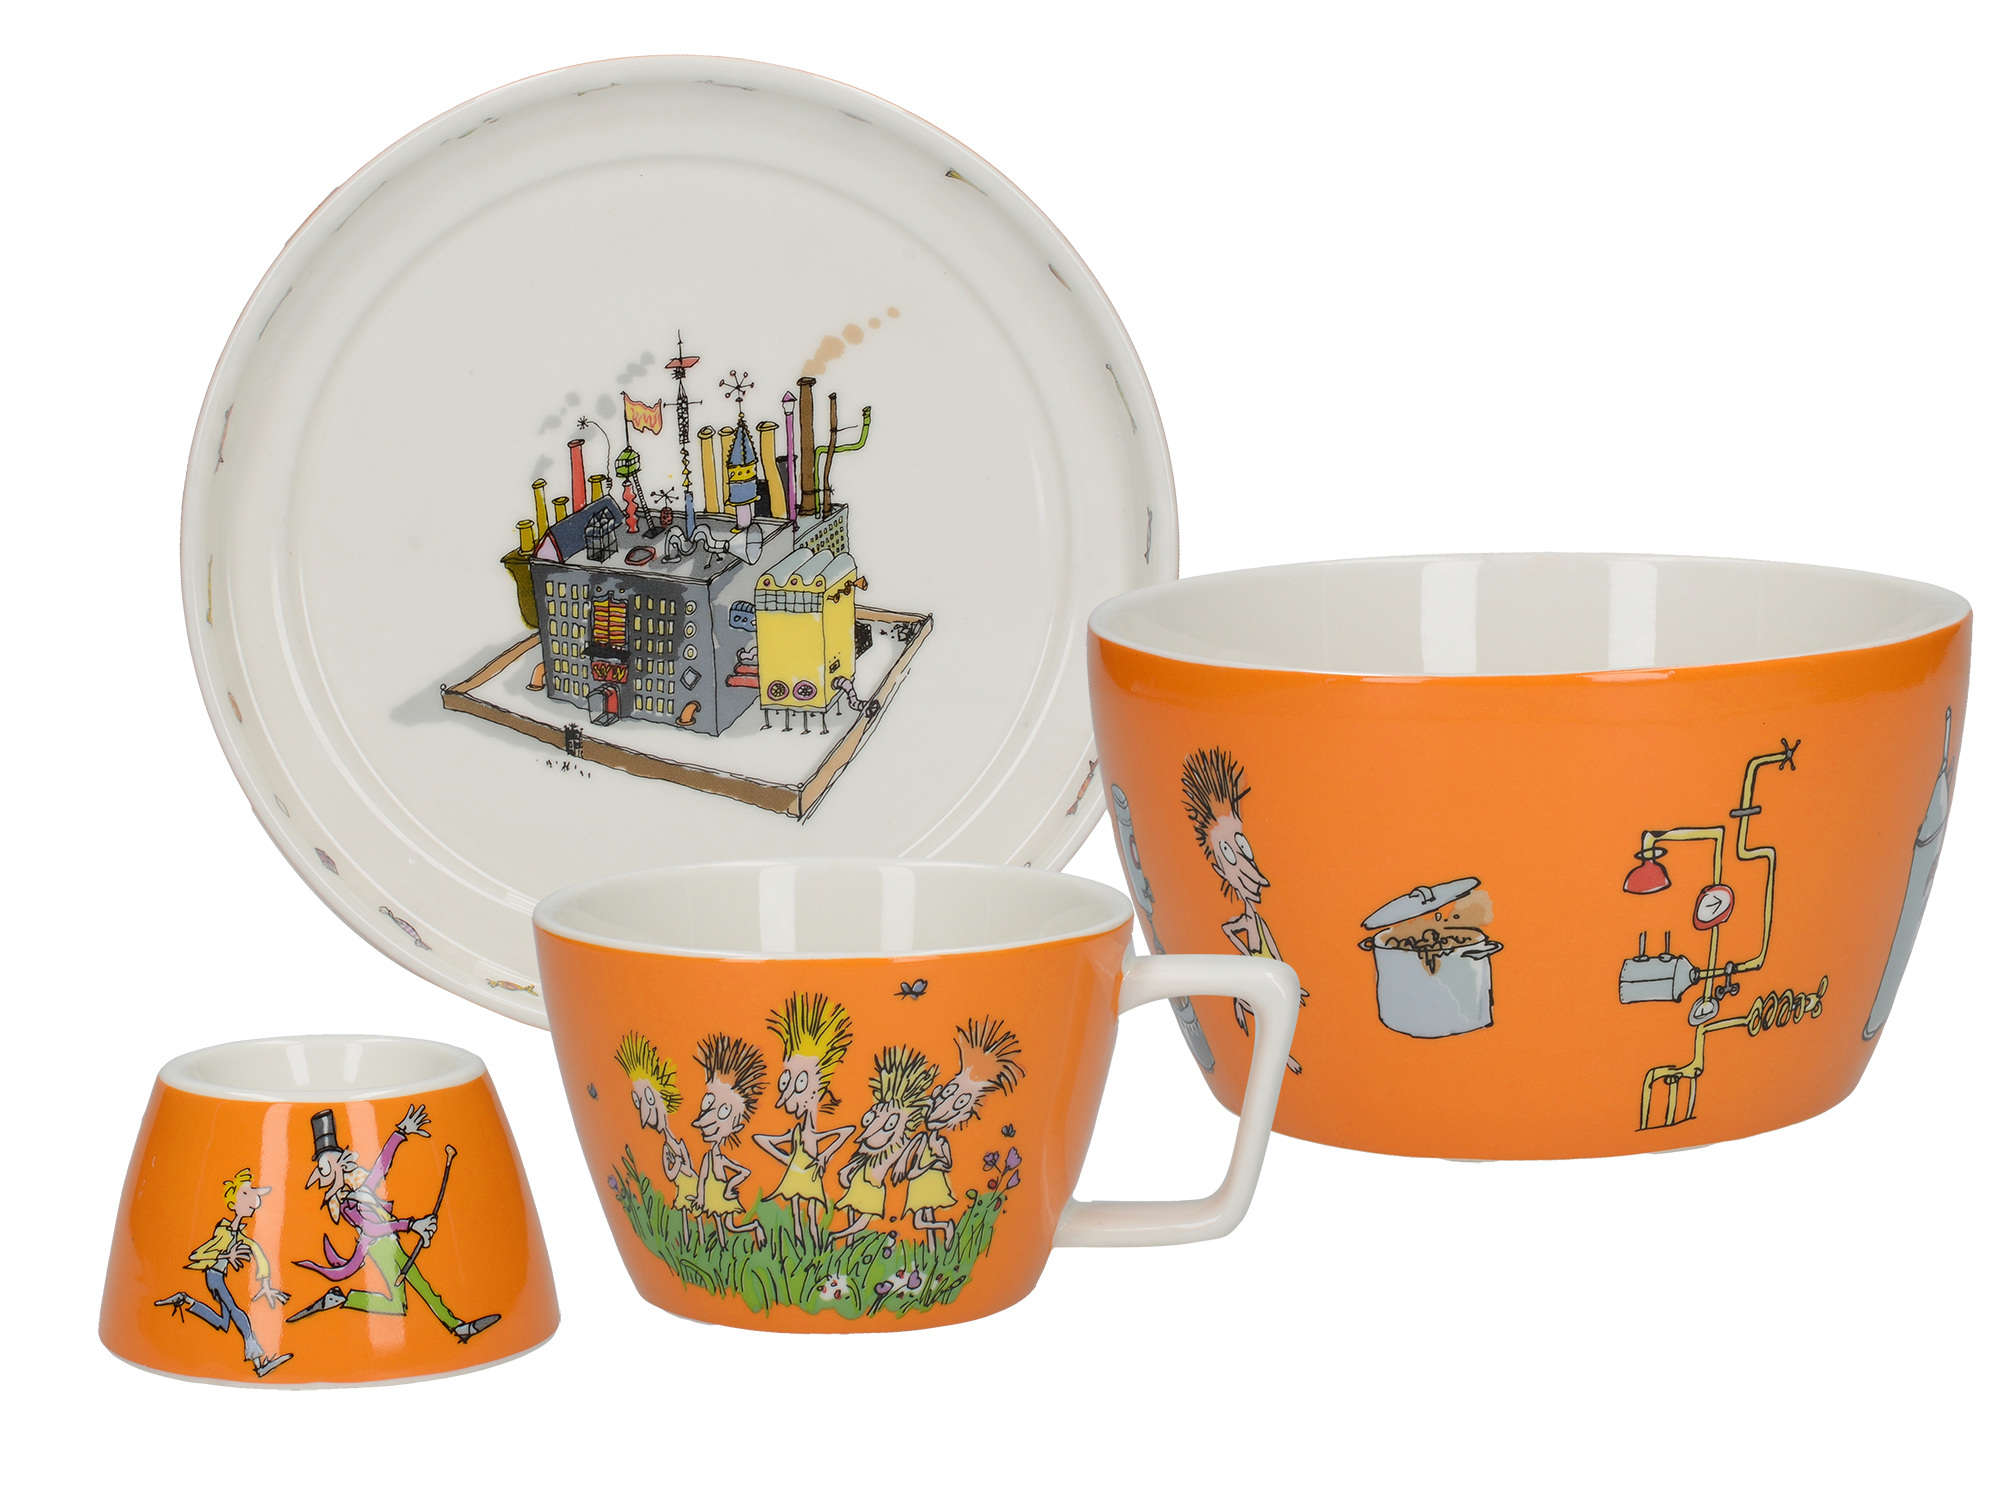 Roald Dahl Charlie And The Chocolate Factory Set 4Pc Stacking Breakfast Set